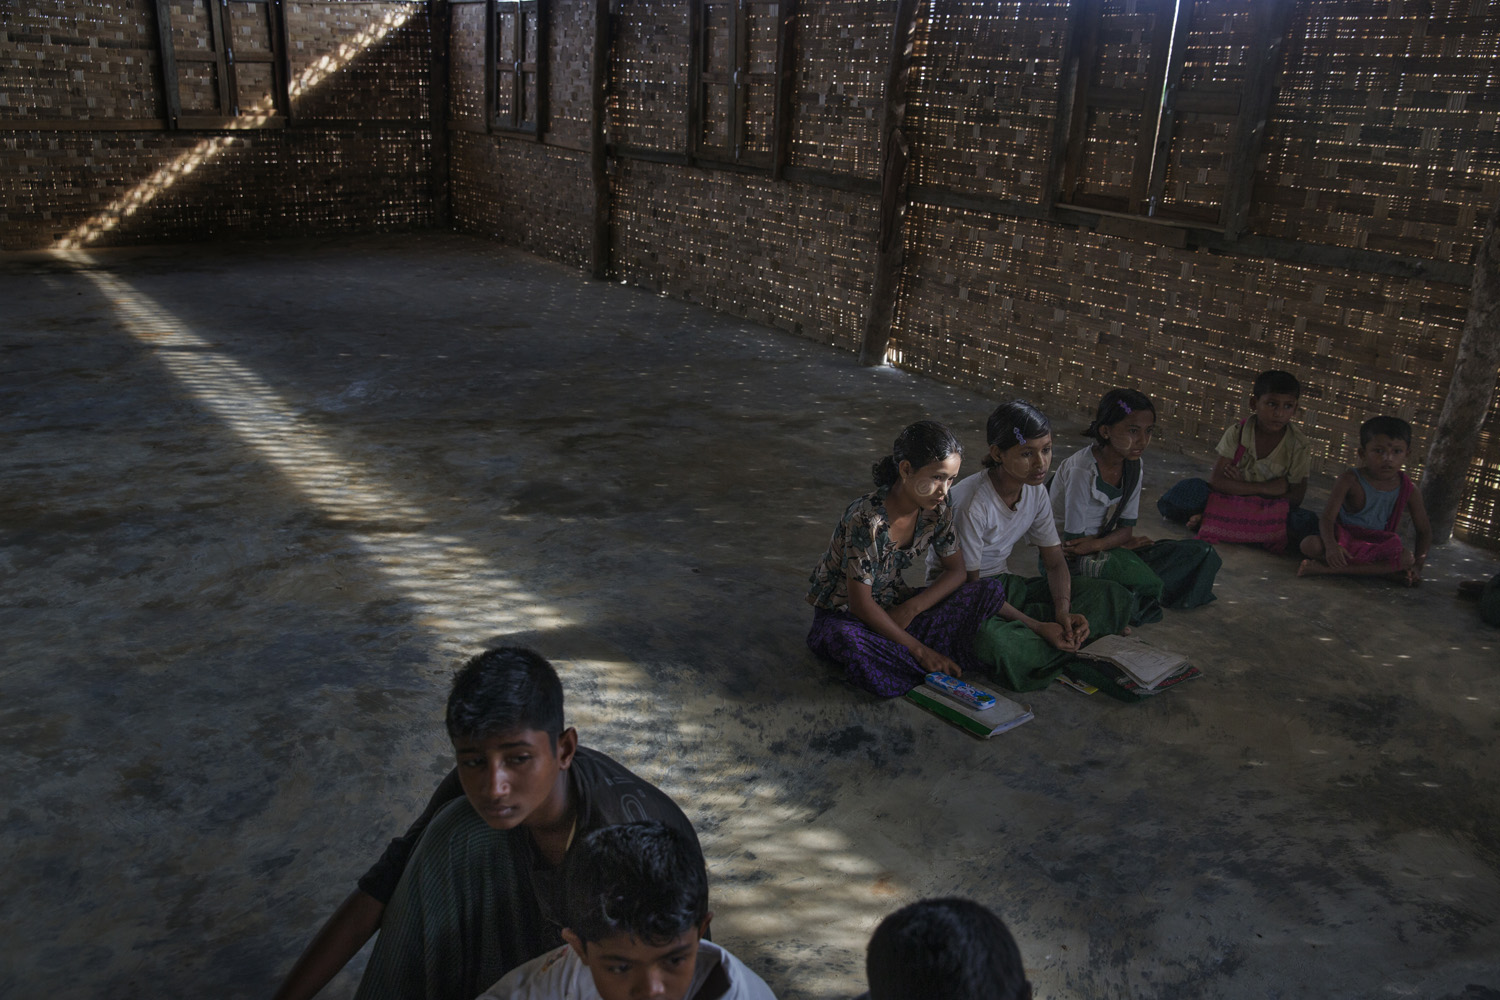 Children learning the Quran at a madrassa in one of the camps.